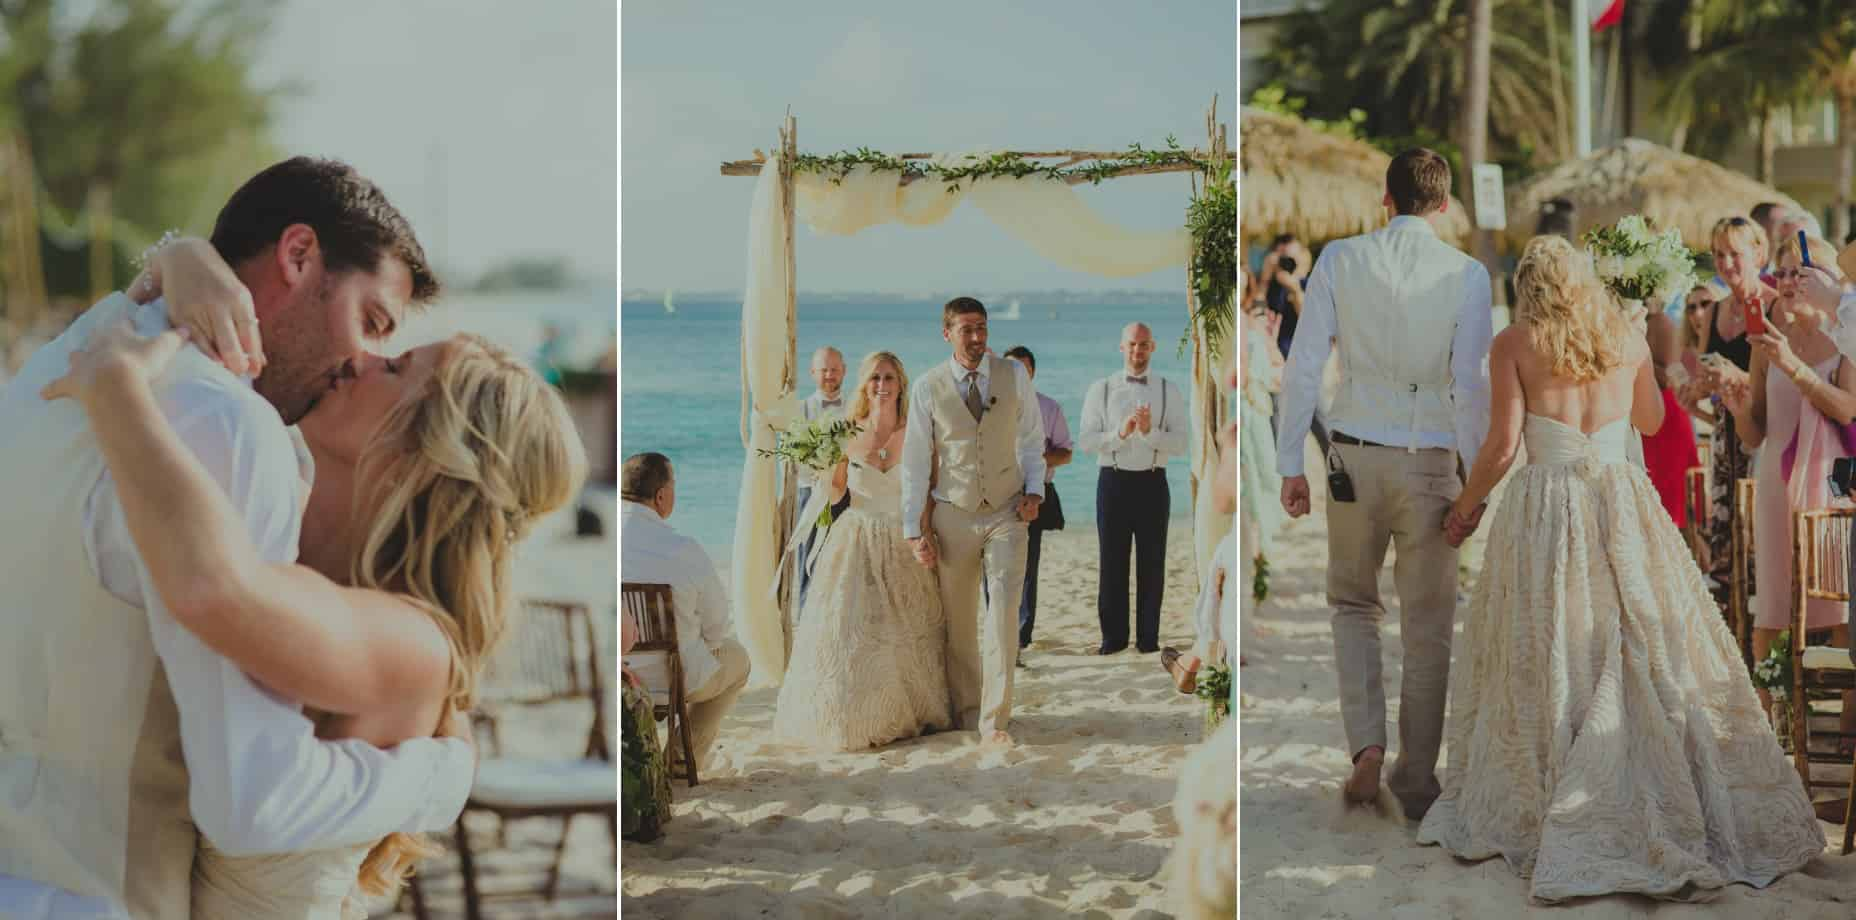 wedding-ceremony-bride-groom-celebrations-ltd-cayman-islands-destination-wedding